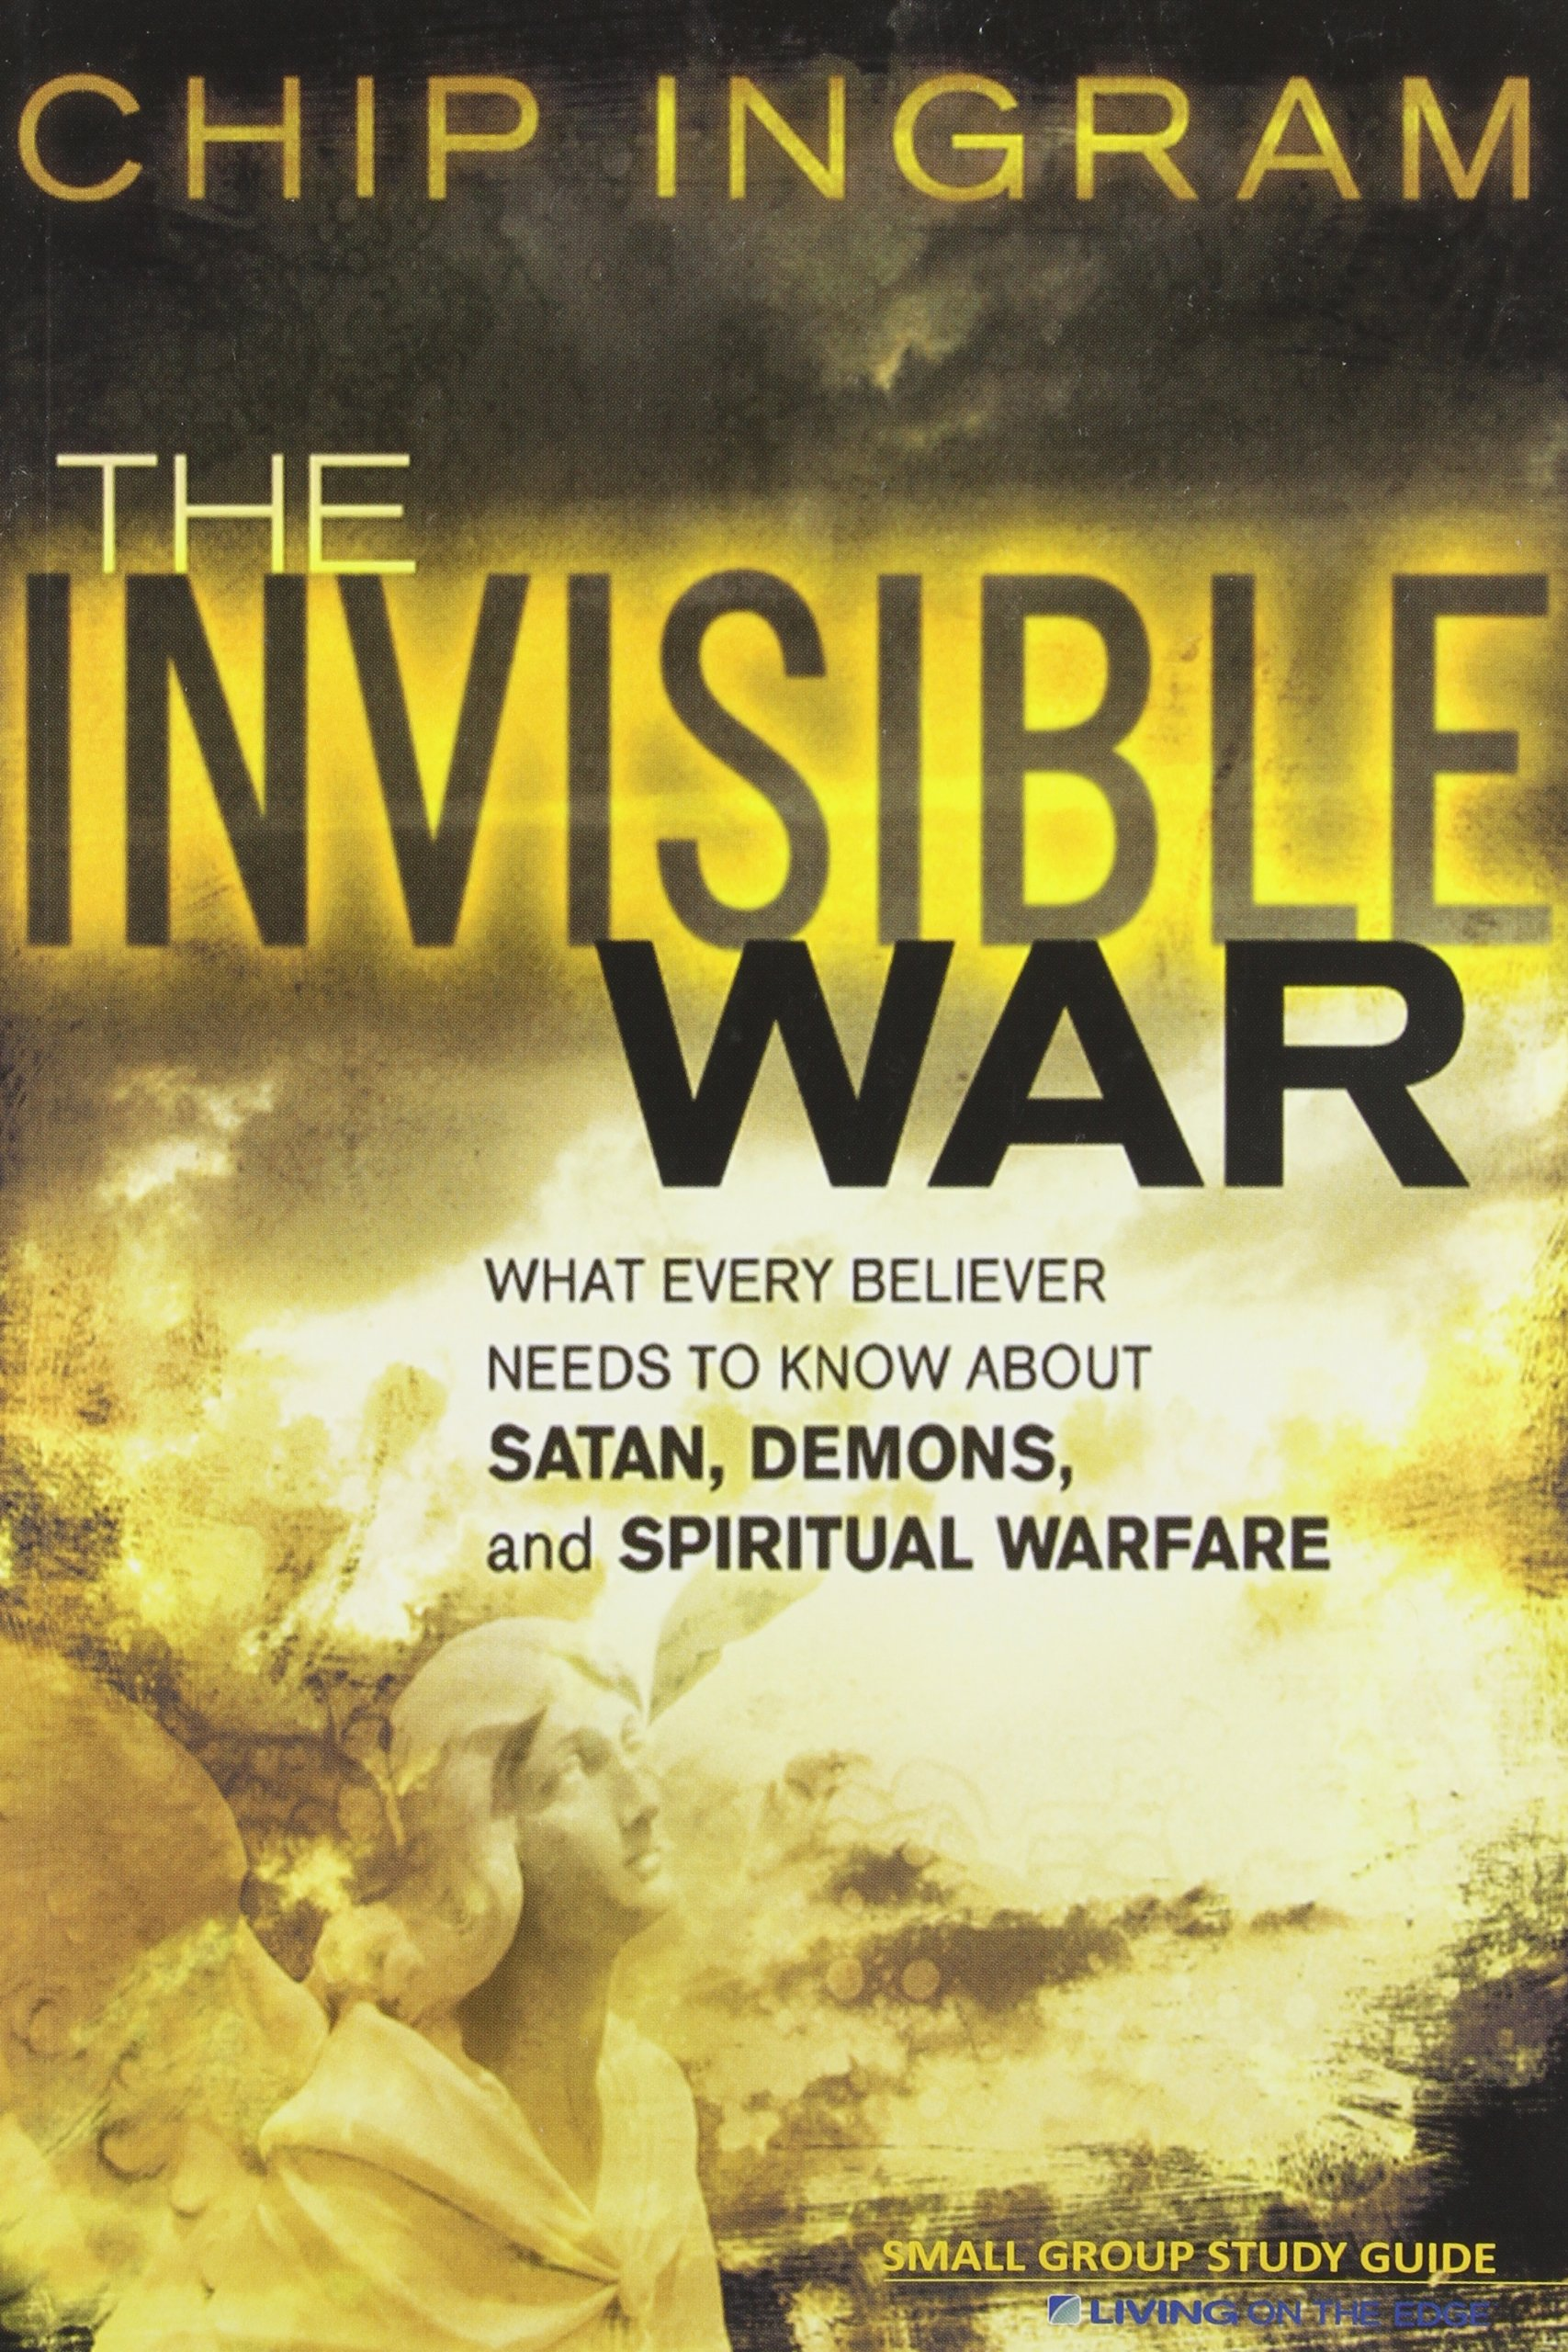 the invisible war study guide what every believer needs to know rh amazon com Chip Ingram Bible Studies chip ingram the invisible war study guide pdf